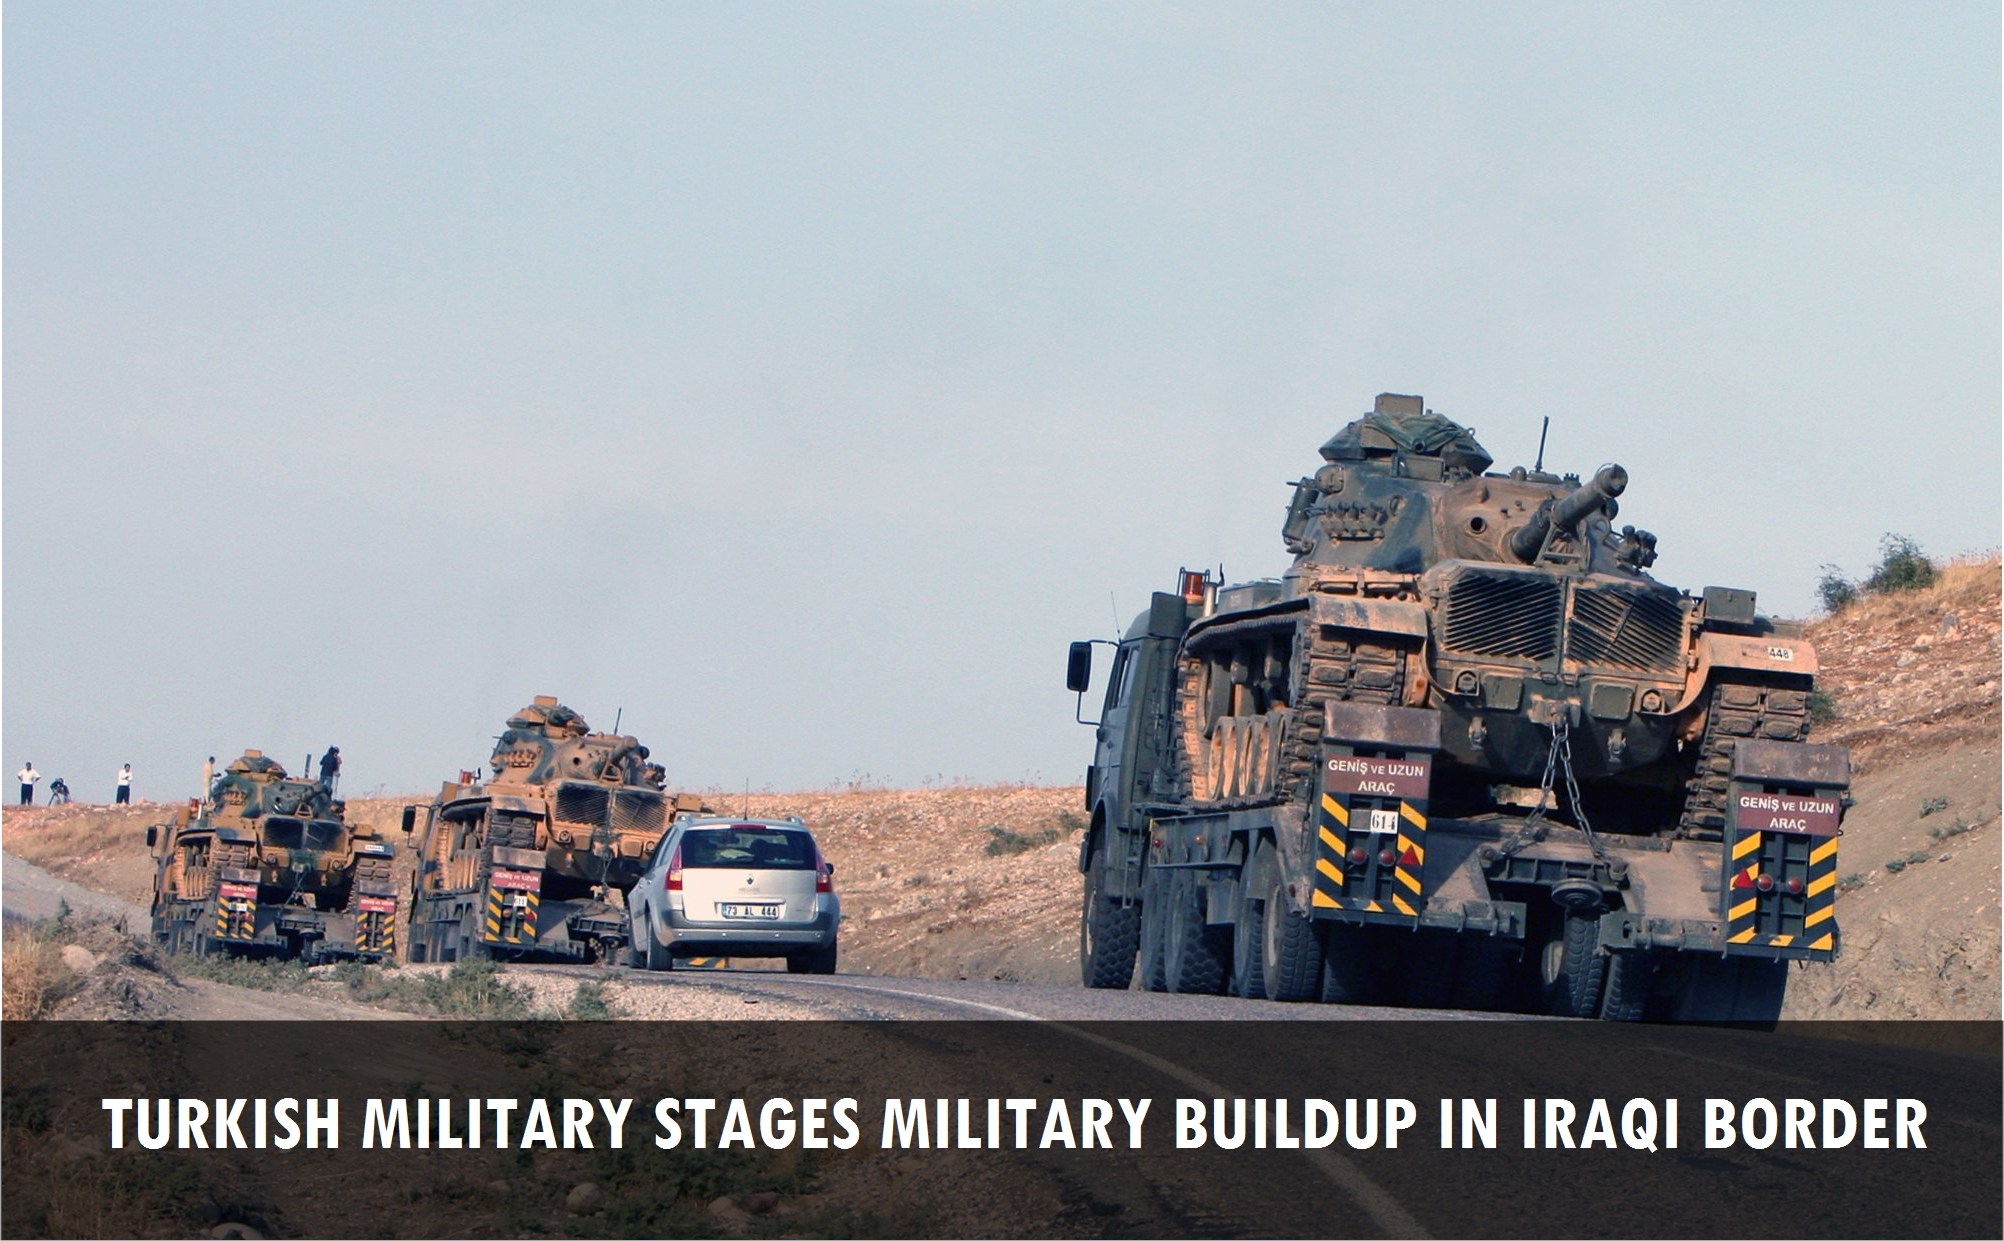 Turkish military stages military buildup in Iraqi border